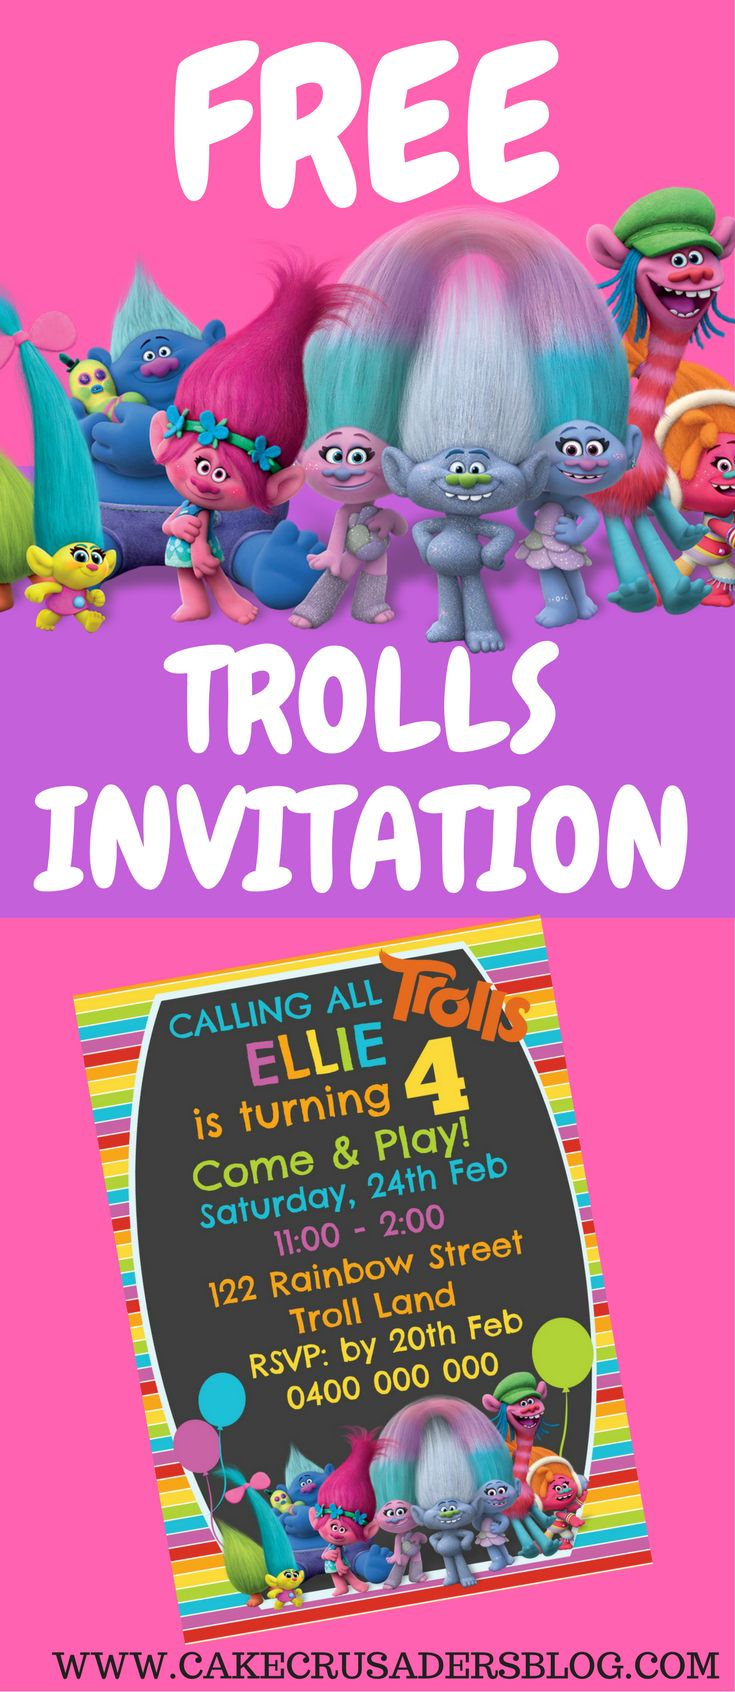 Printable pirate party decorations amp supplies free templates - Diy Free Trolls Invitation Great Party Printable Templates That Can Be Homemade